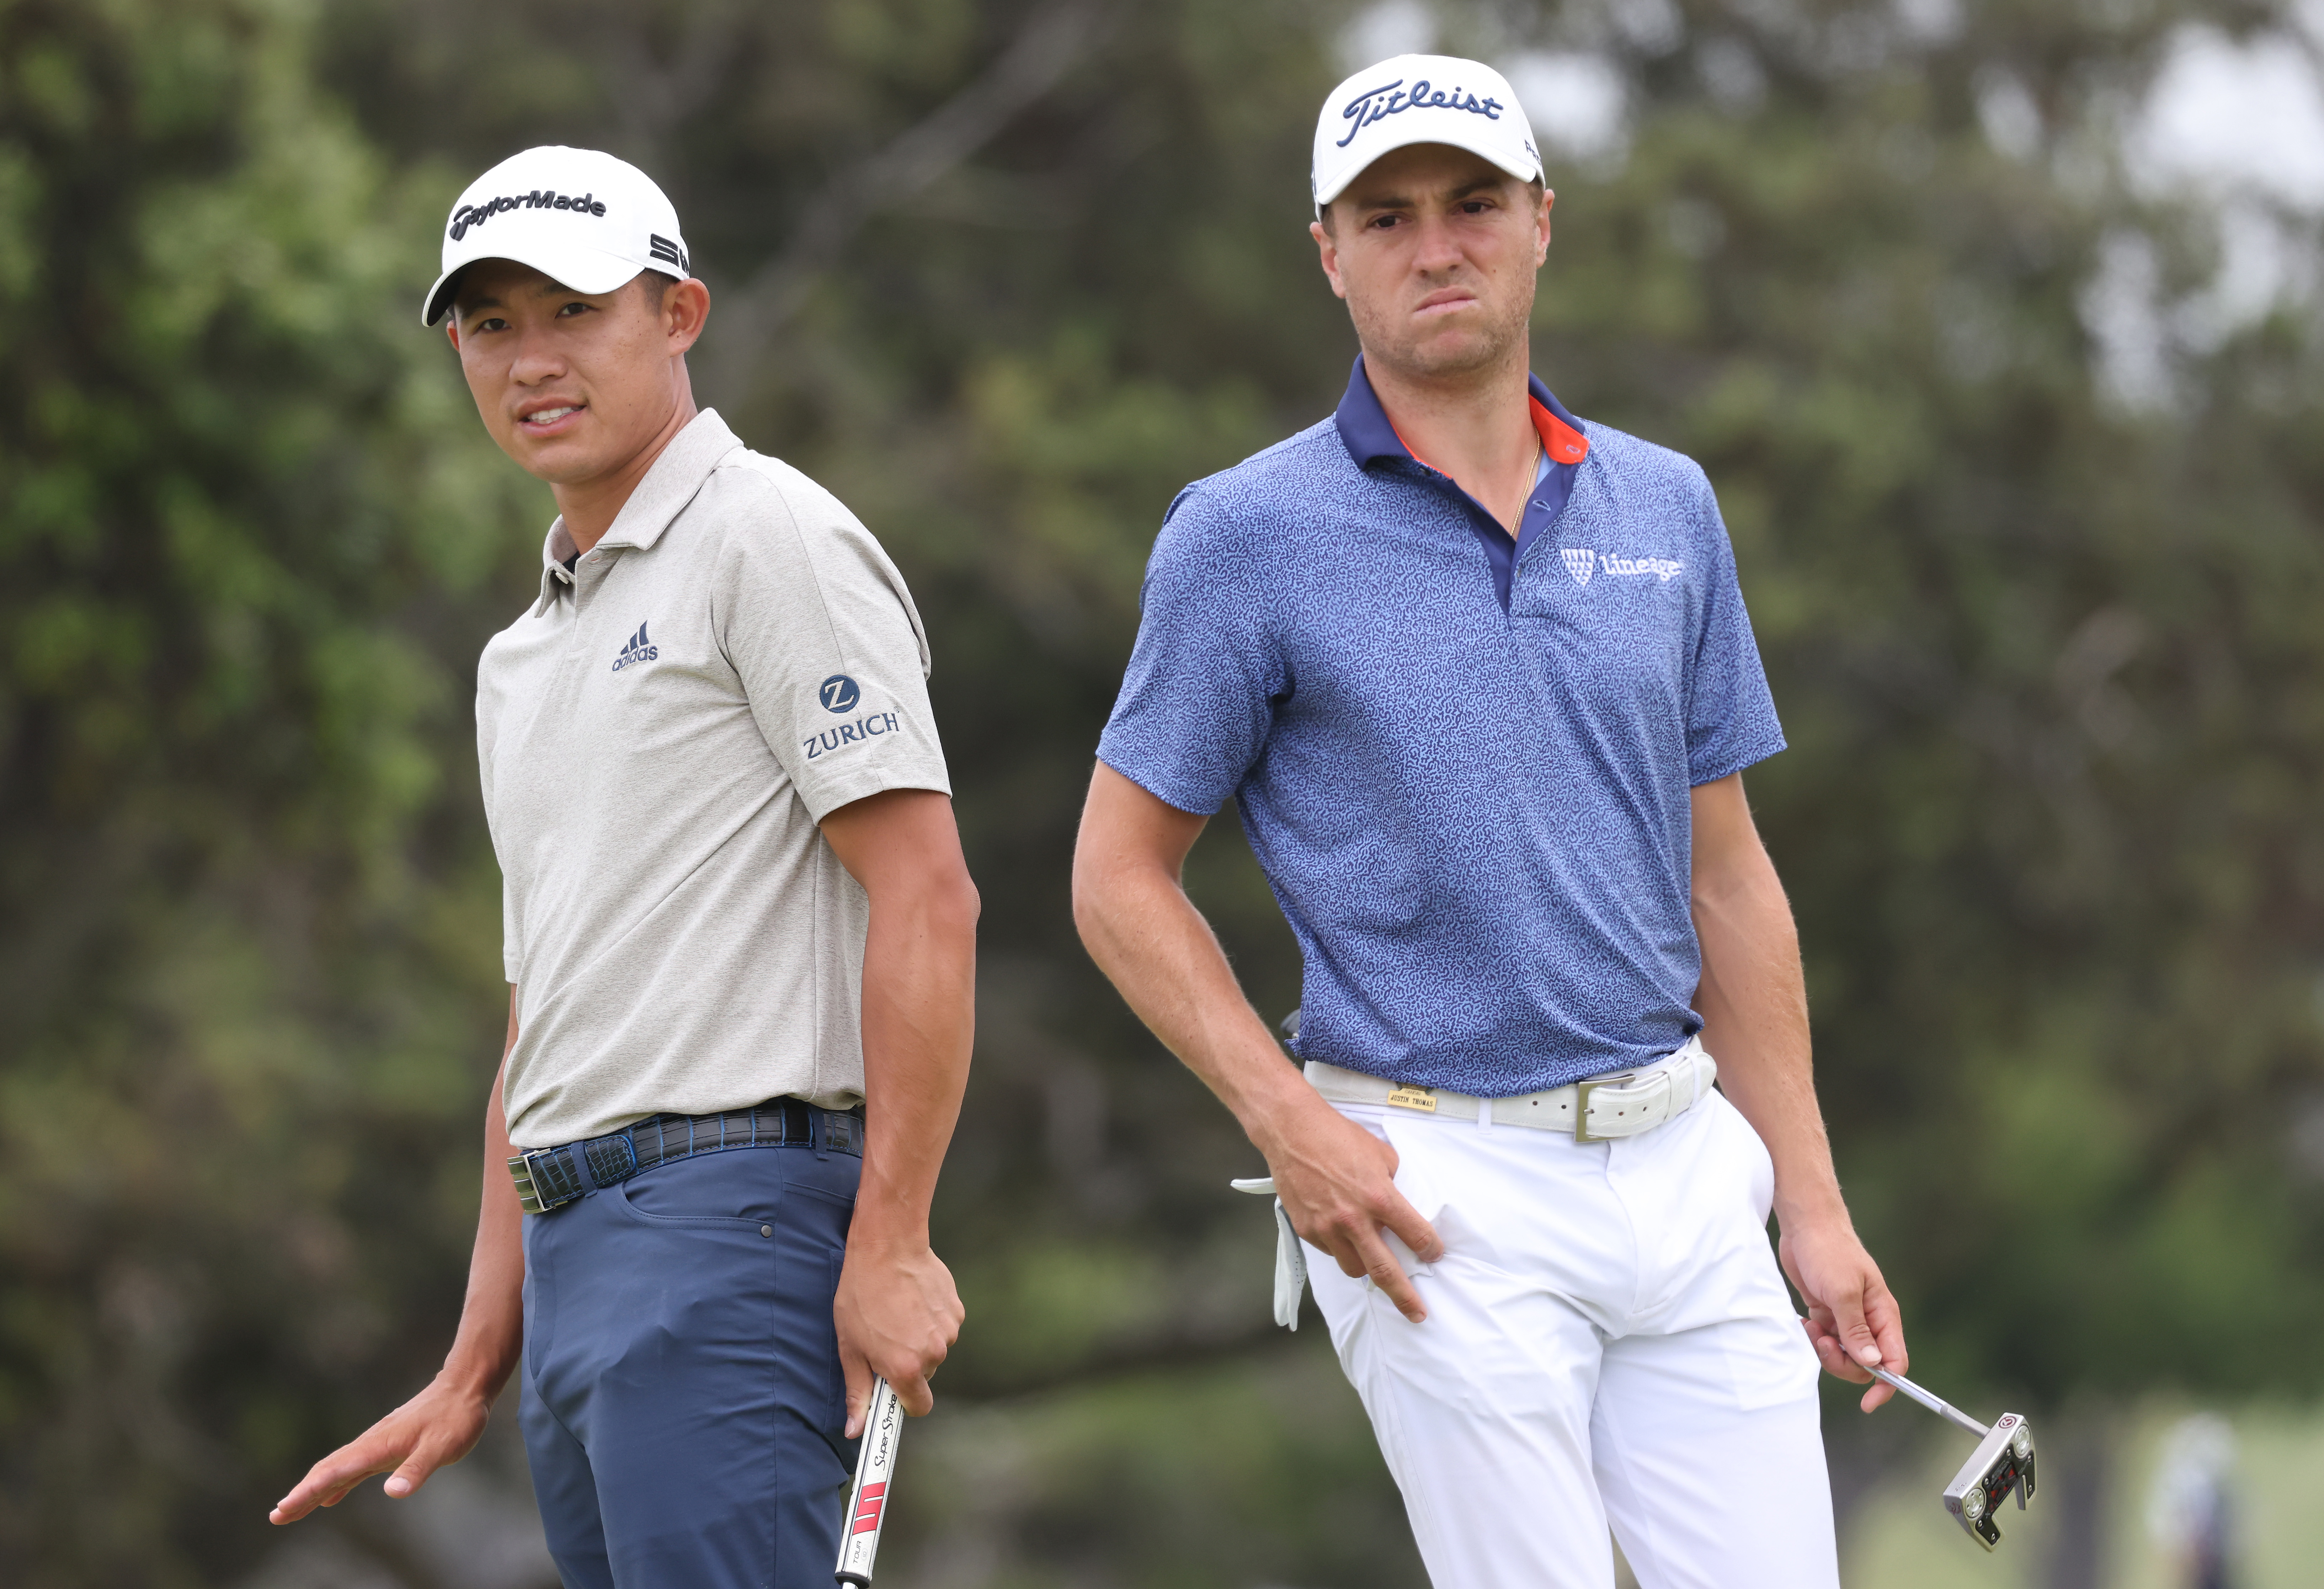 Justin Thomas (R) of the United States and Collin Morikawa (L) of the United States watch Morikawa's putt on the second green during the third round of the 2021 U.S. Open at Torrey Pines Golf Course (South Course) on June 19, 2021 in San Diego, California.